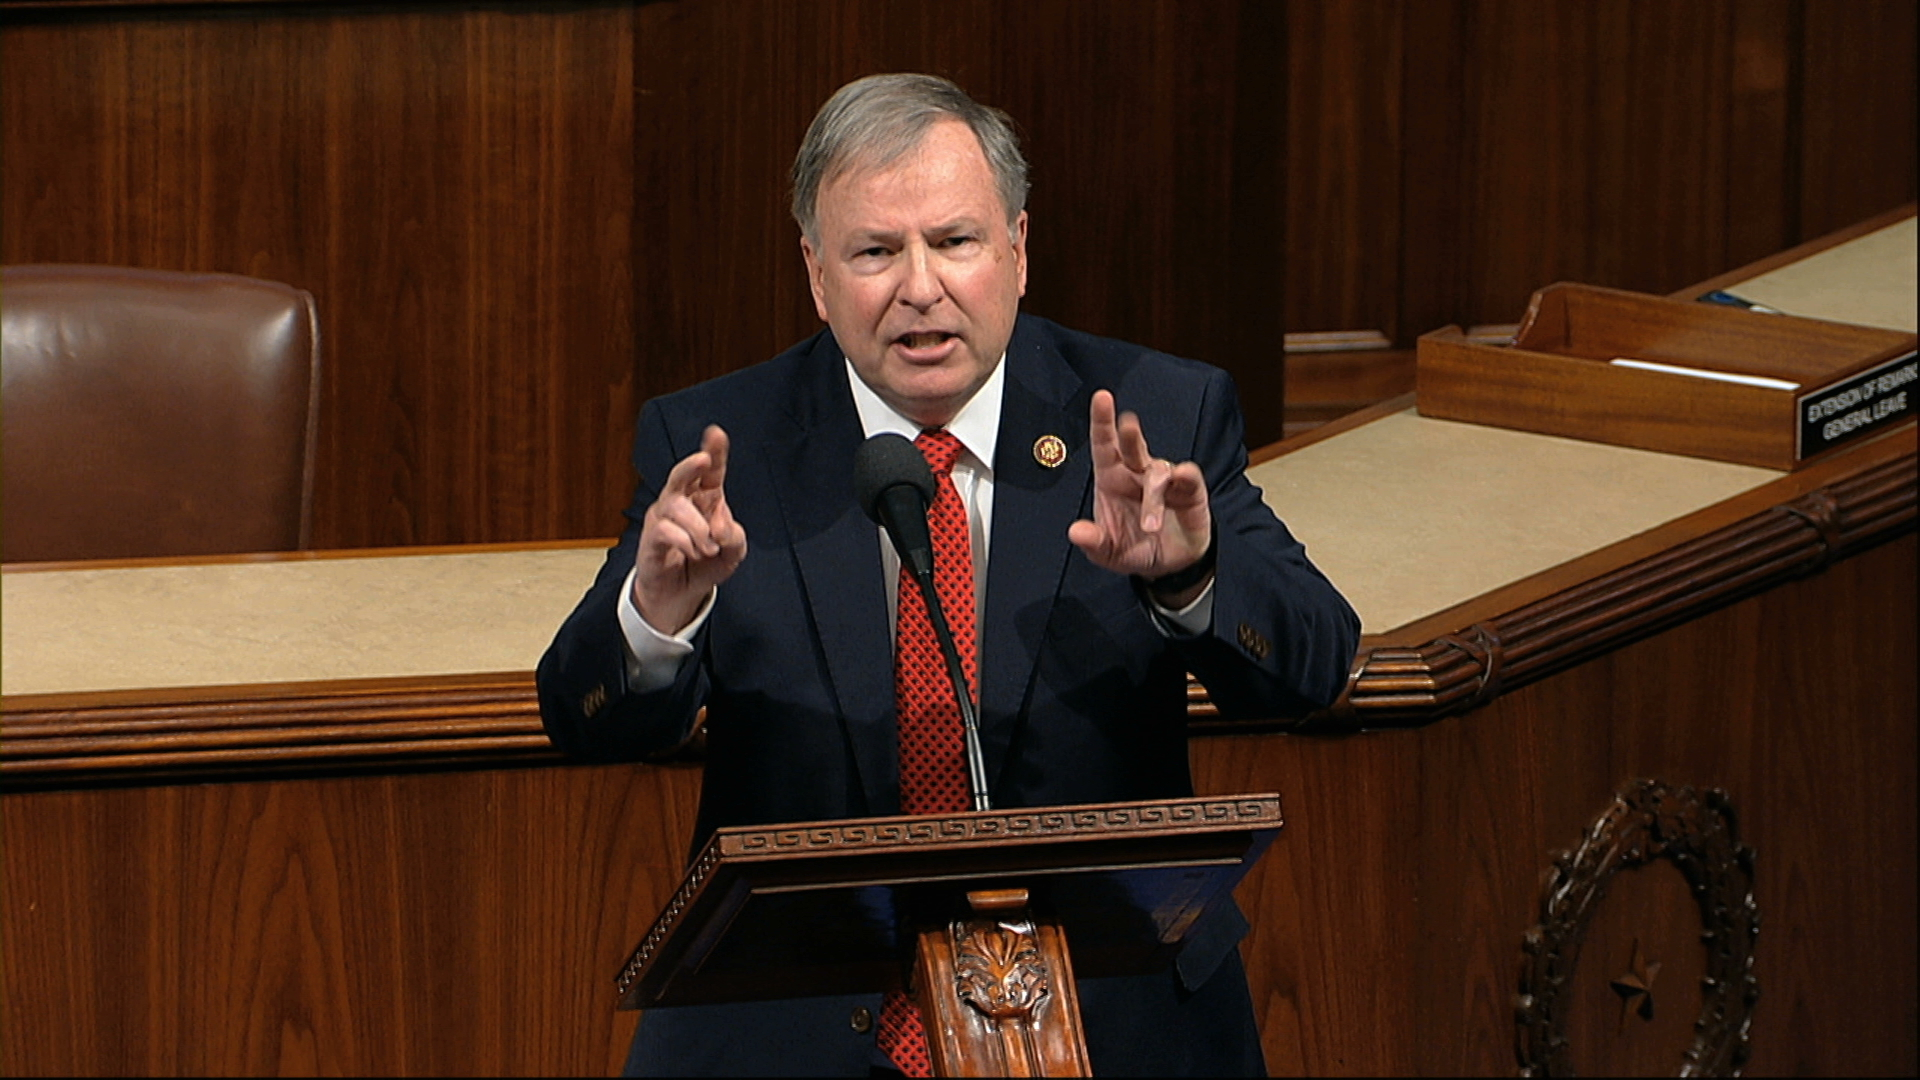 Rep. Doug Lamborn, R-Colo., speaks as the House of Representatives debates the articles of impeachment against President Donald Trump at the Capitol in Washington, Wednesday, Dec. 18, 2019. (House Television via AP)